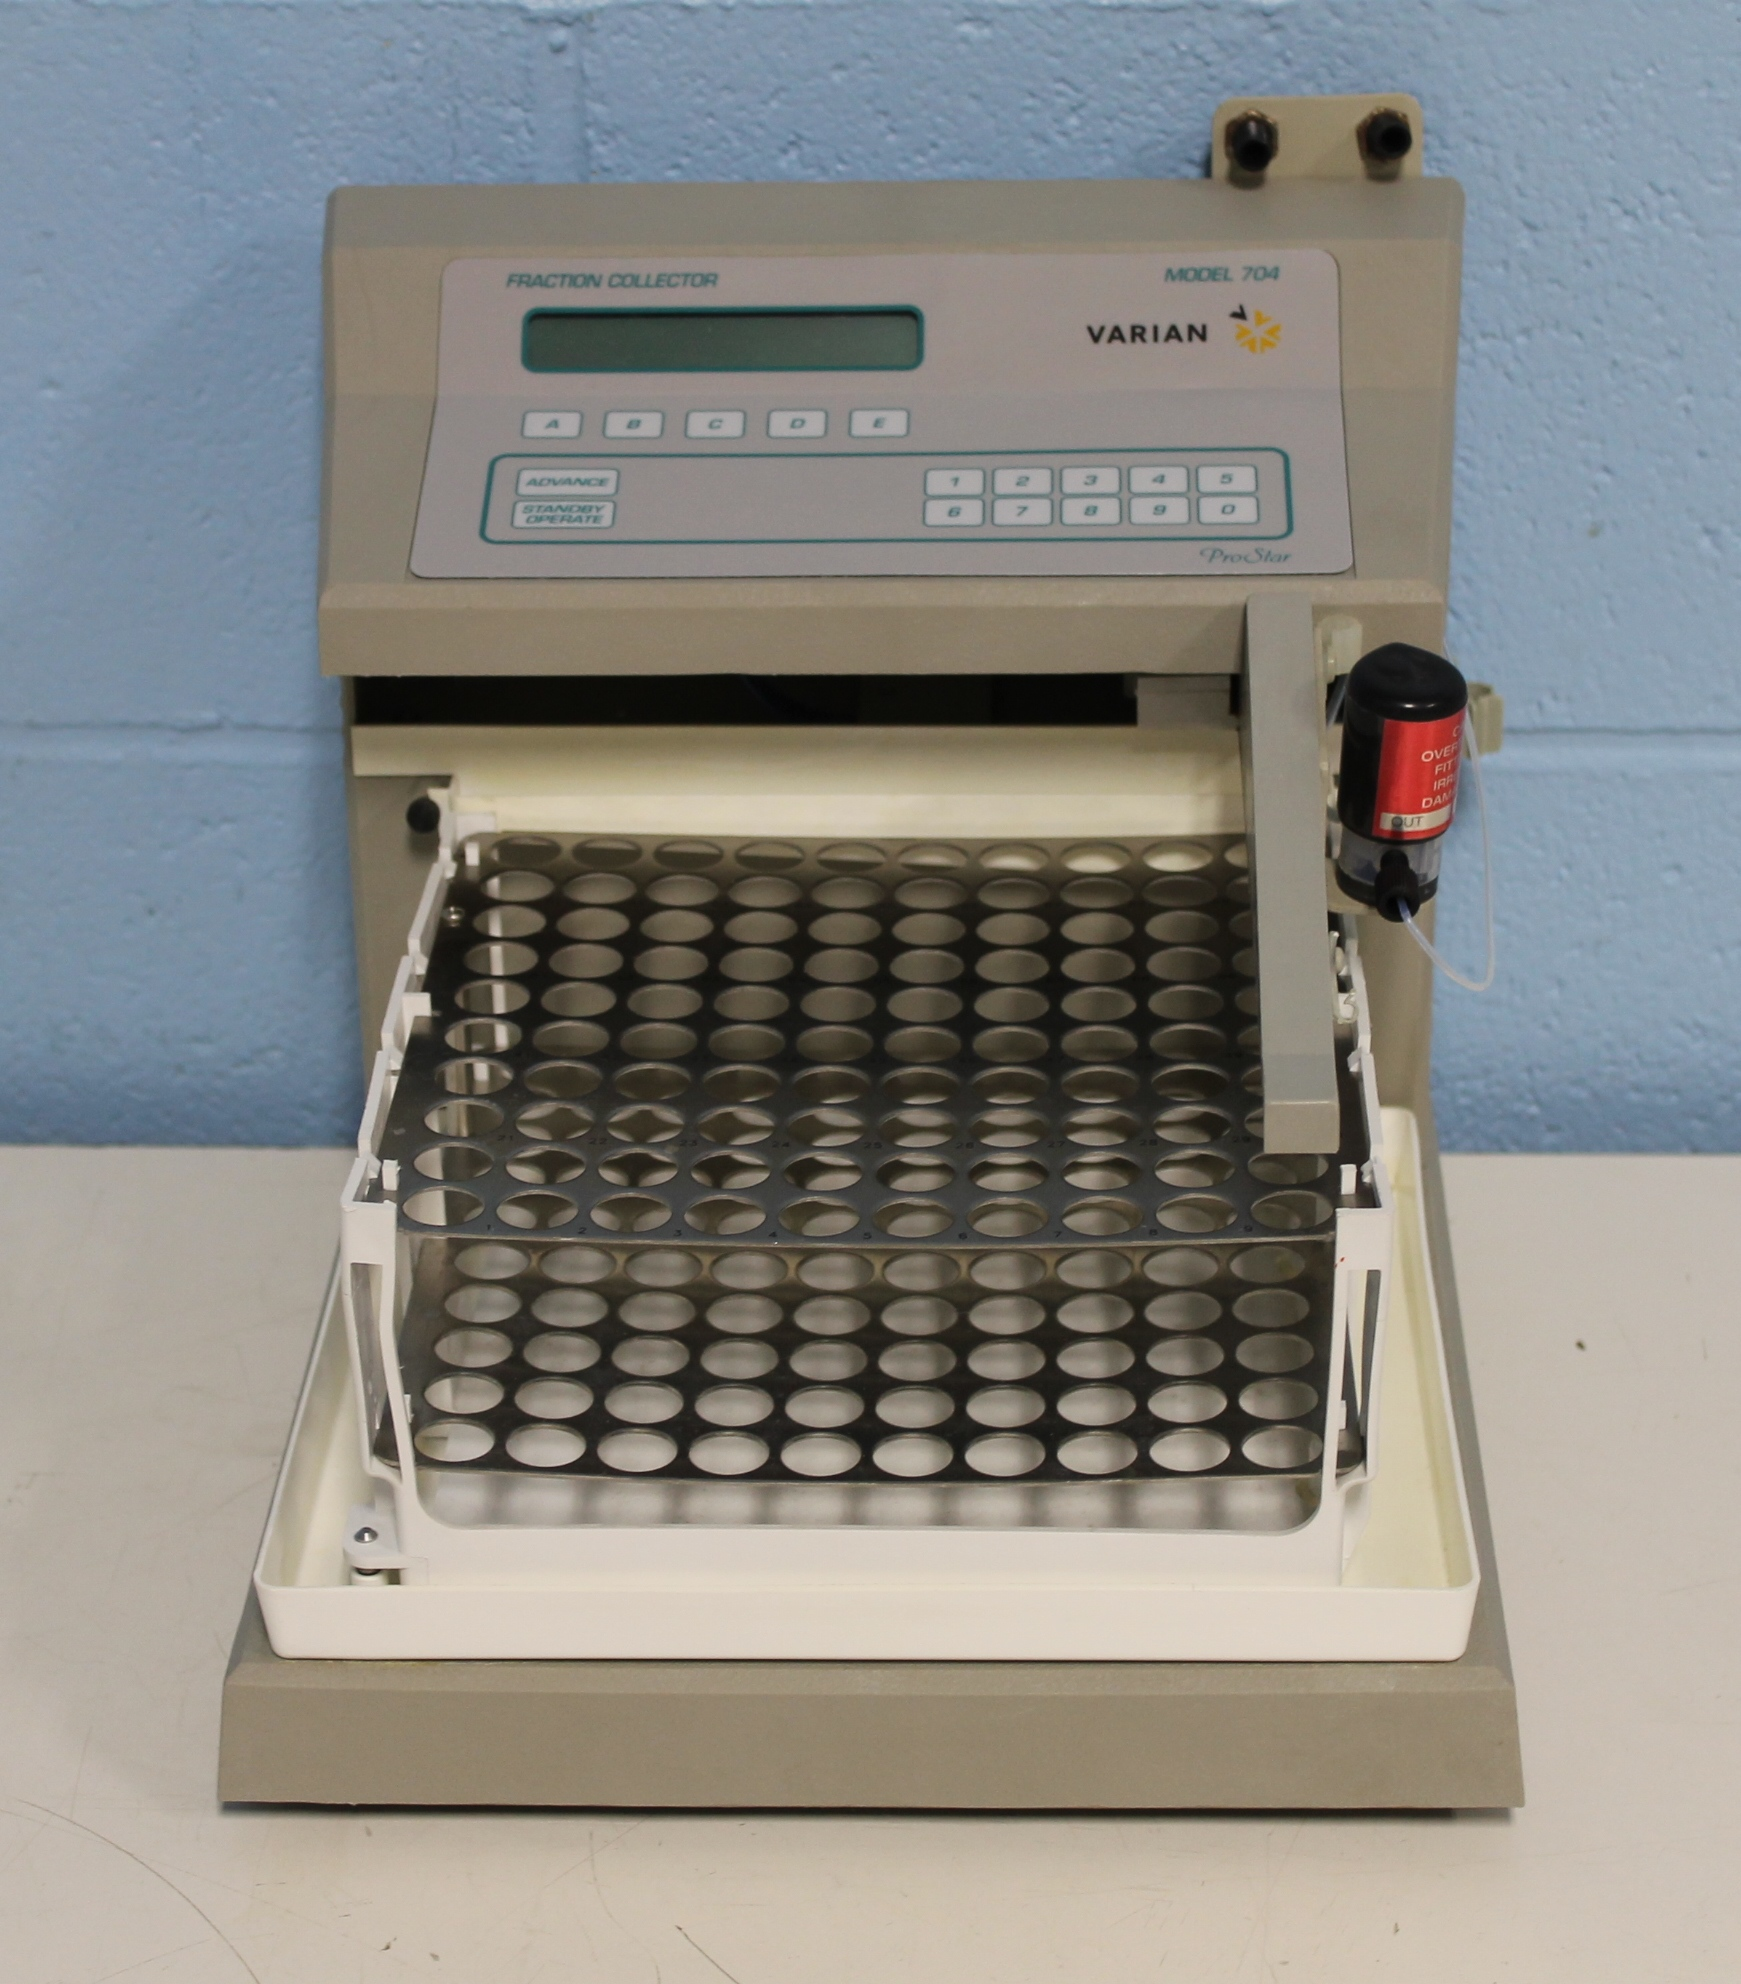 Varian 704 Fraction Collector Image